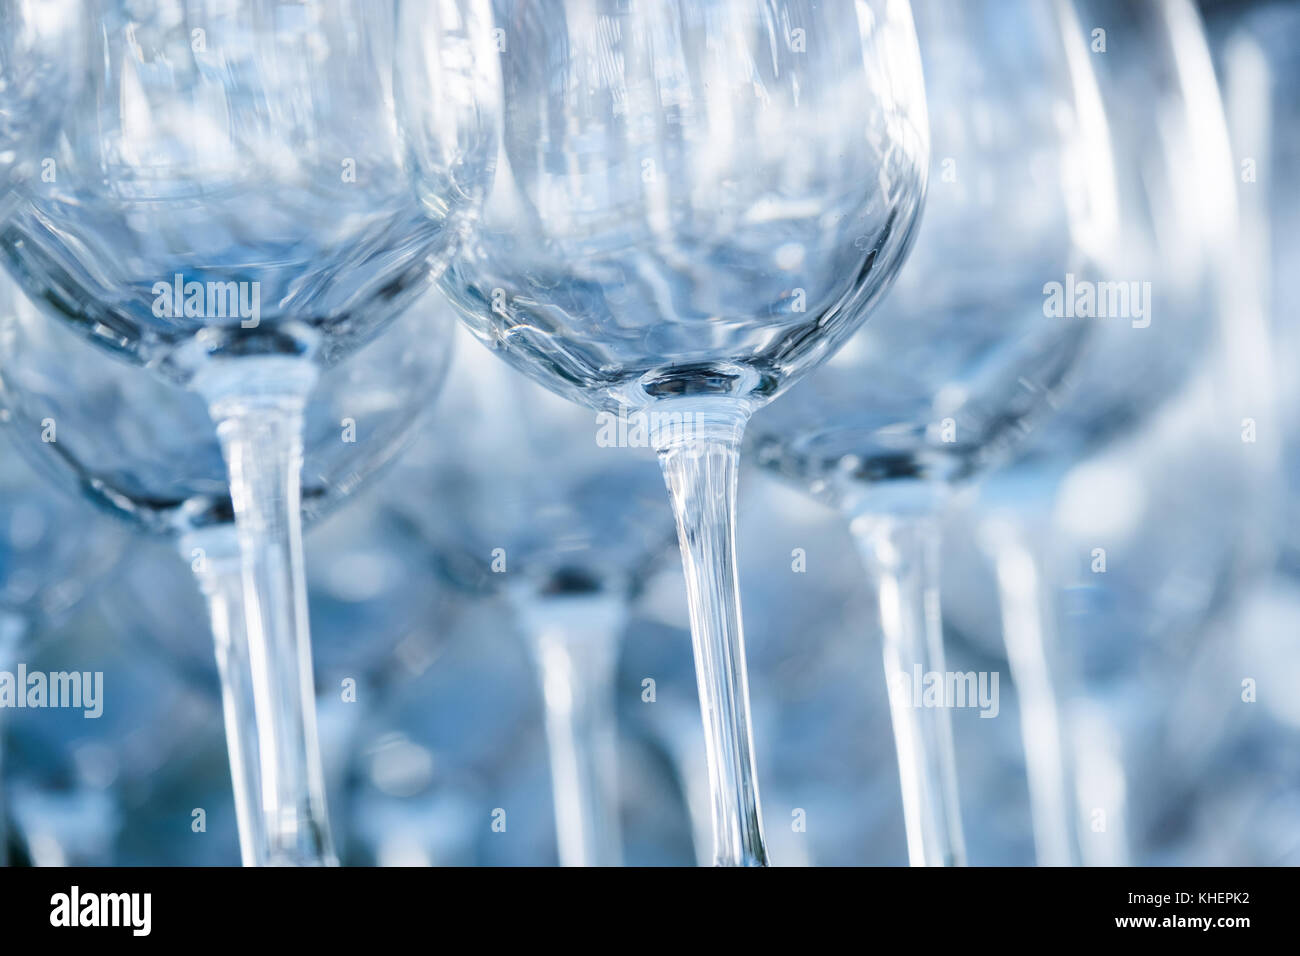 Empty wine glasses in a restaurant - Stock Image